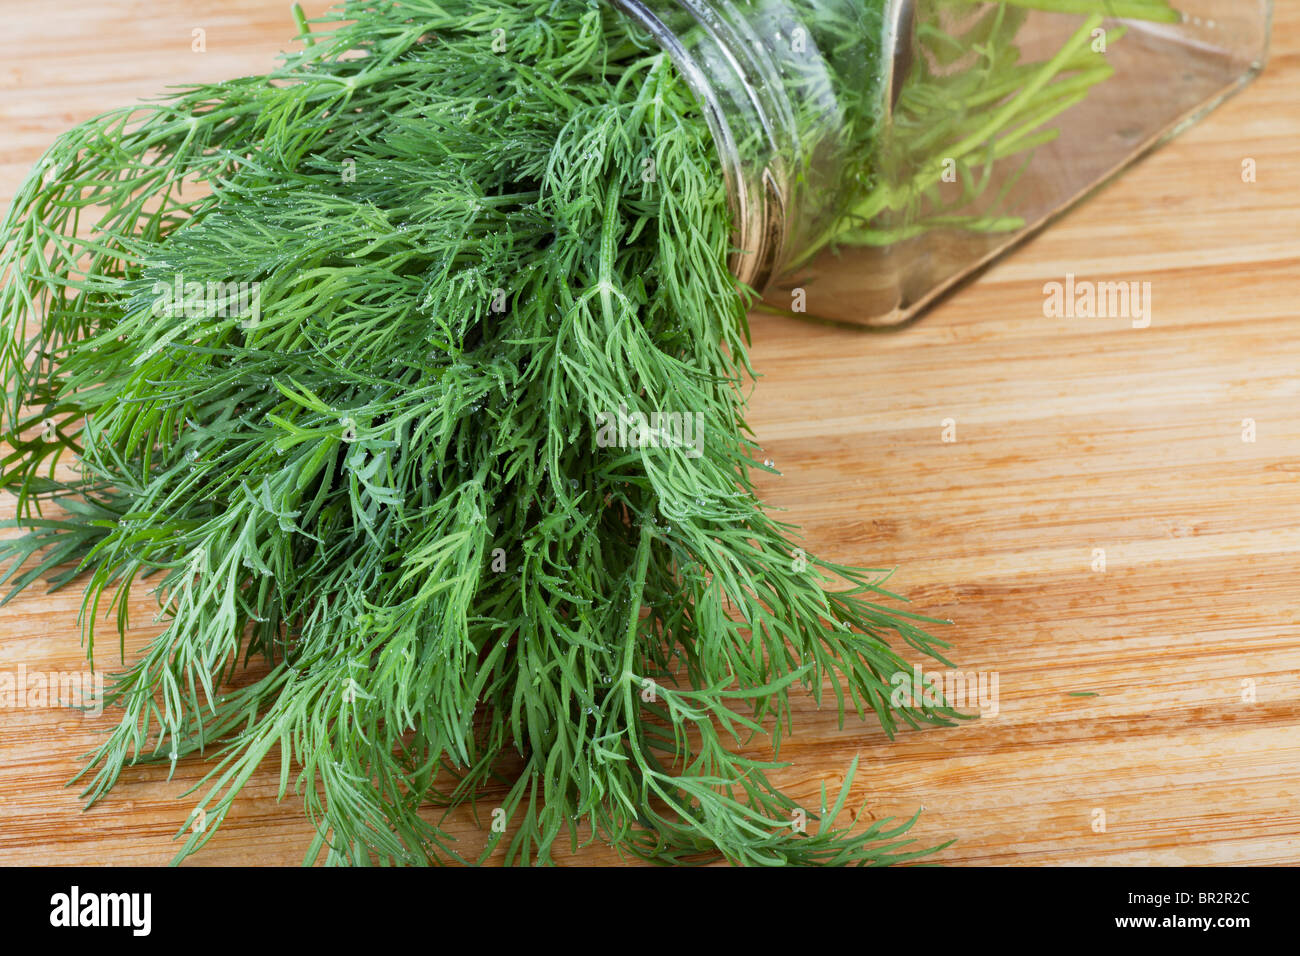 Fresh dill covered in water drops, on cutting board - Stock Image